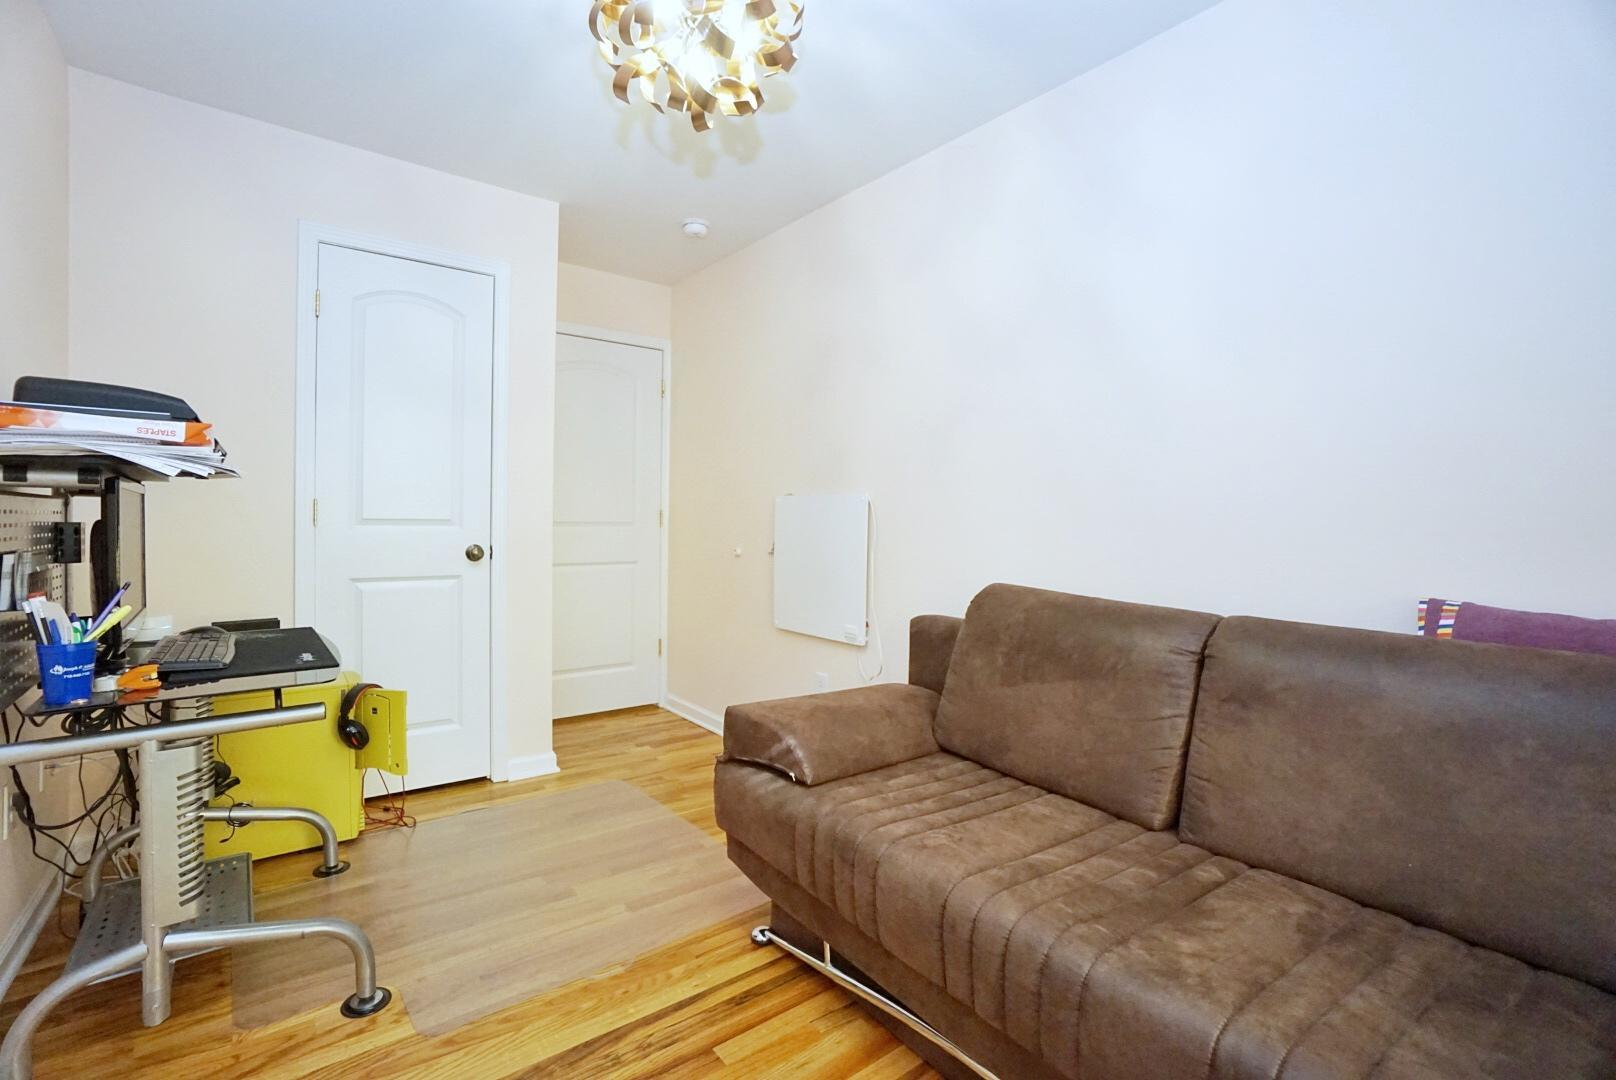 Single Family - Detached 171 Benziger Avenue  Staten Island, NY 10301, MLS-1145235-30